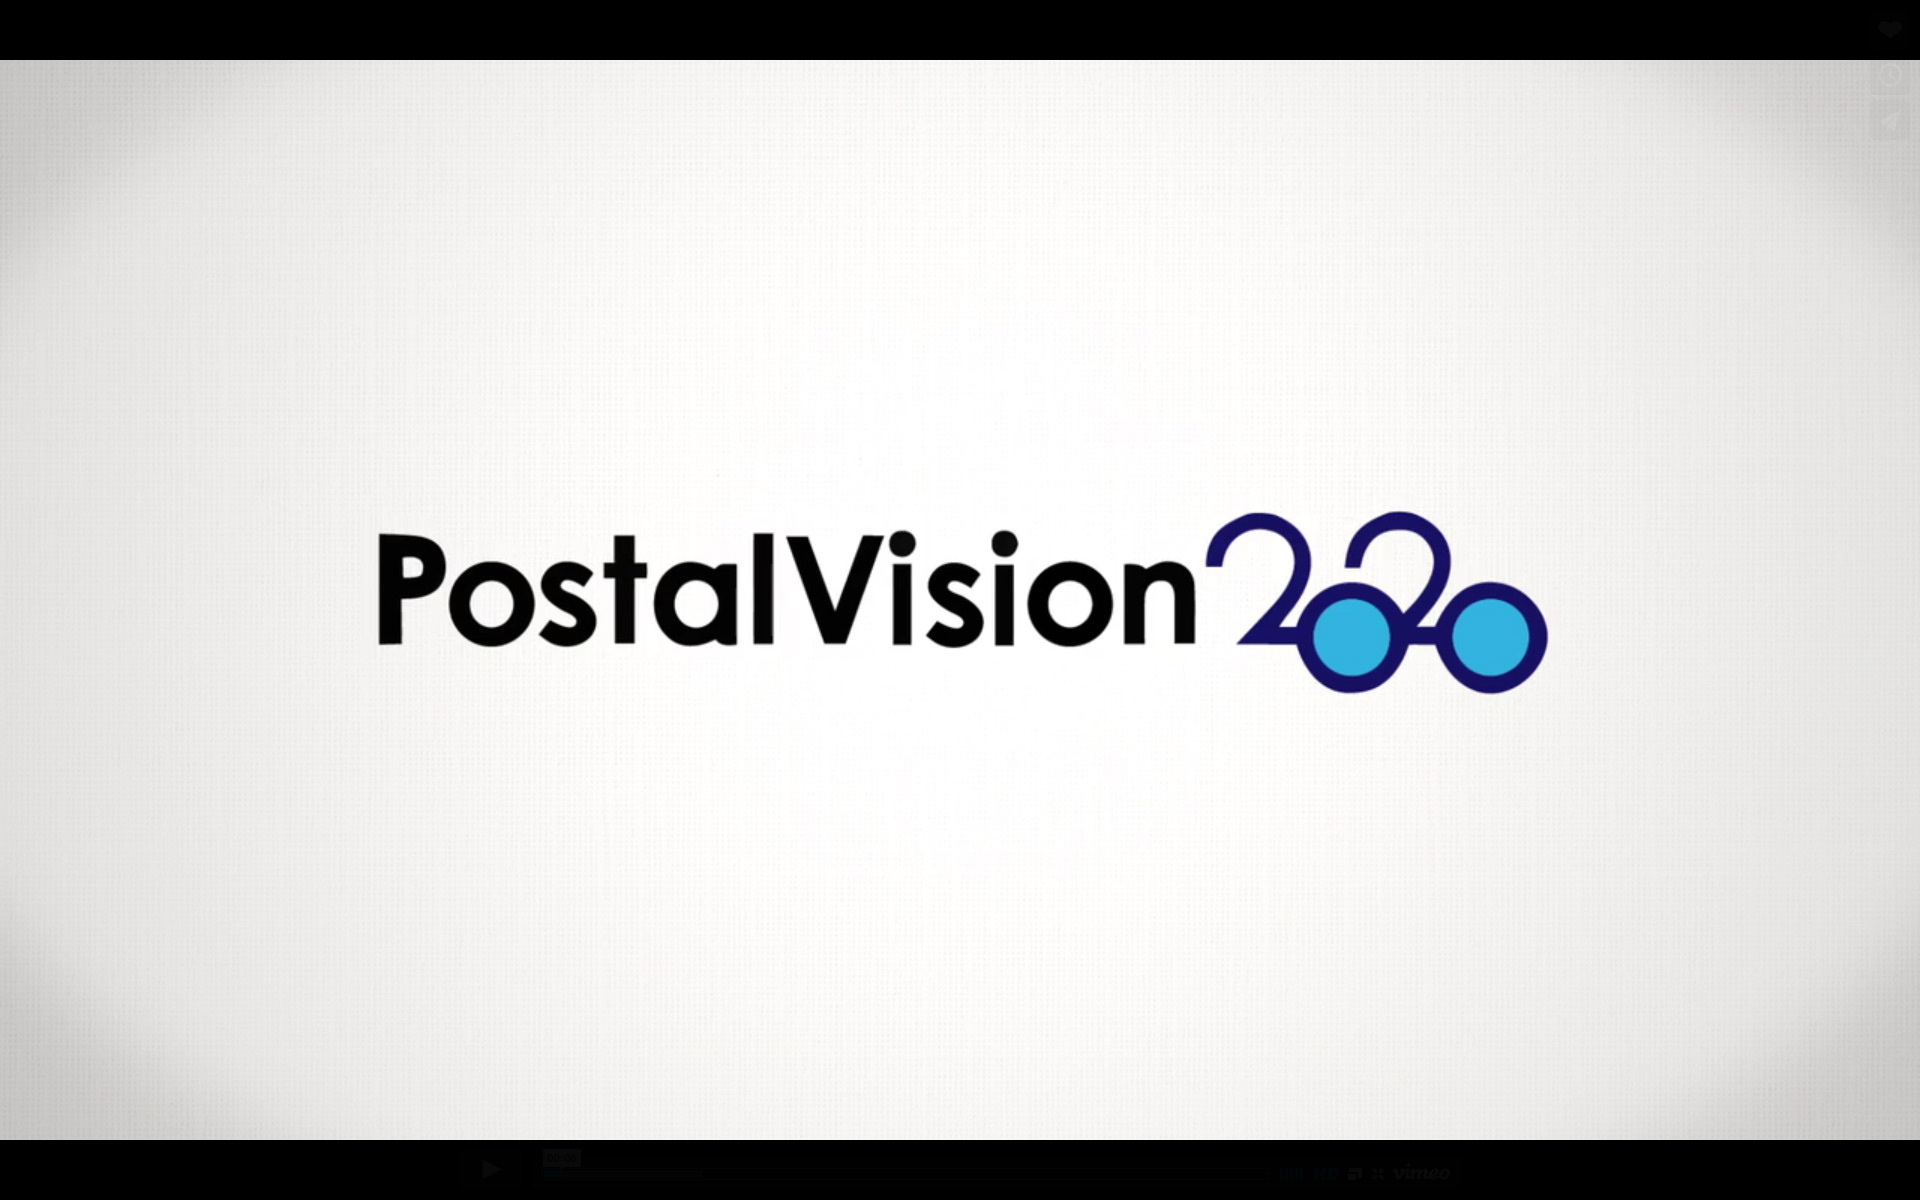 Watch the PostalVision Video